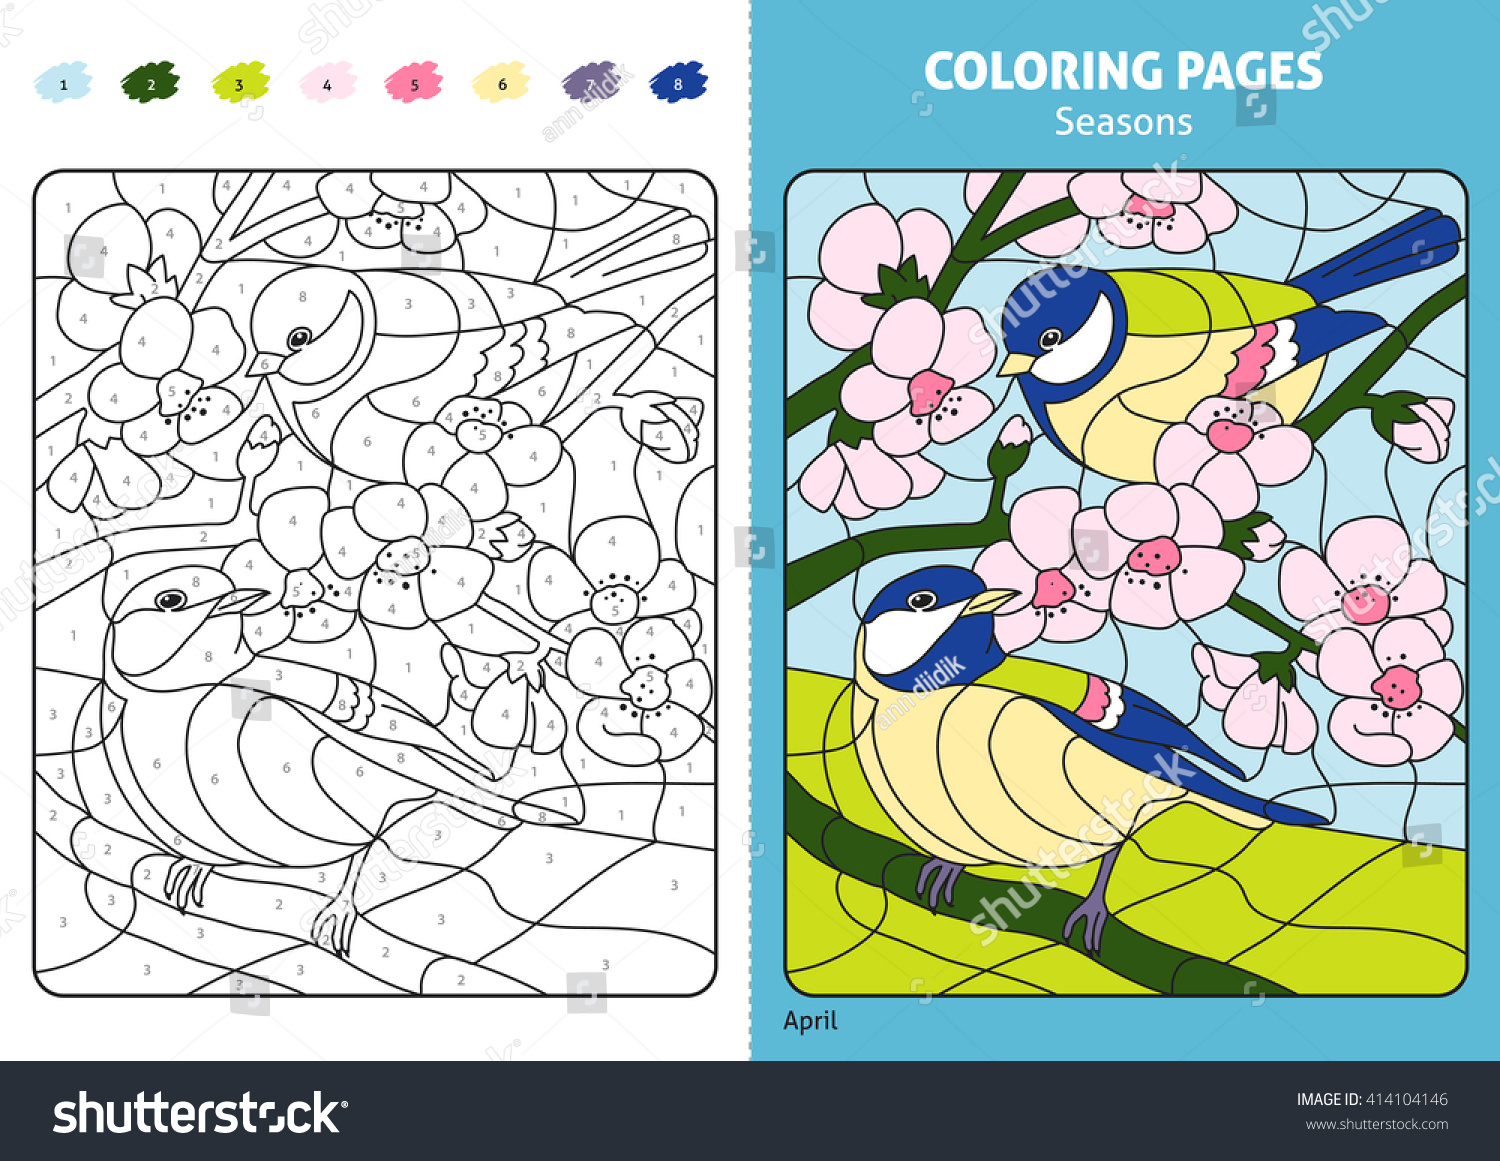 Seasons Coloring Page Kids April Monthprintable Stock Vector